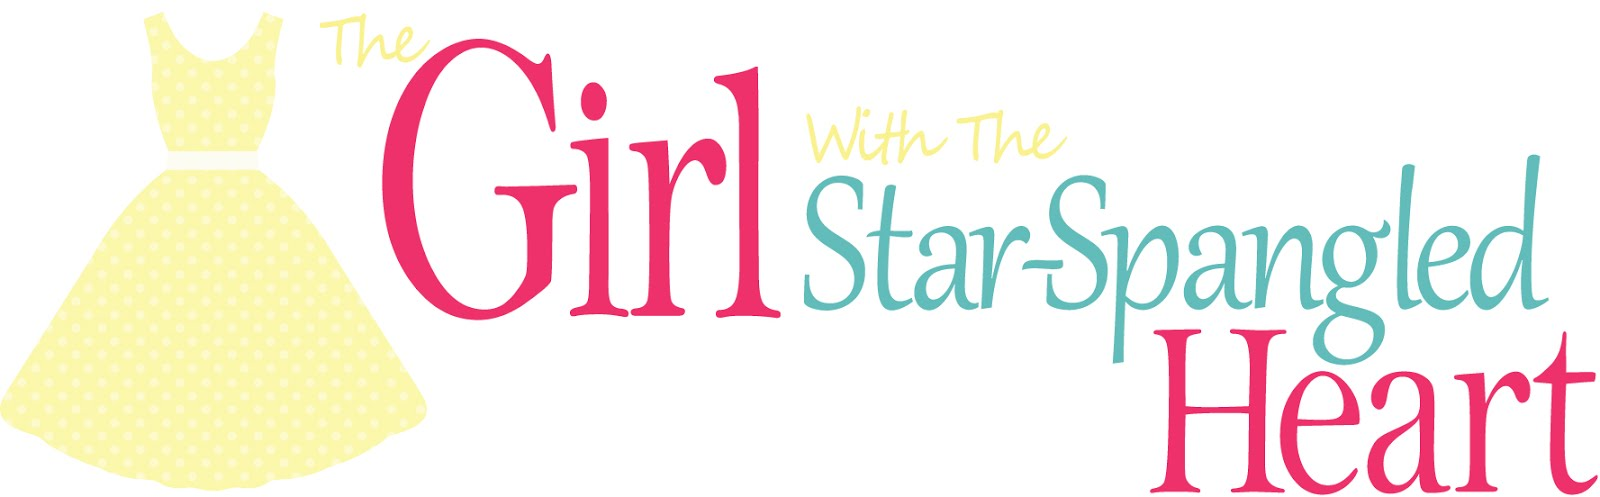 The Girl with the Star-Spangled Heart